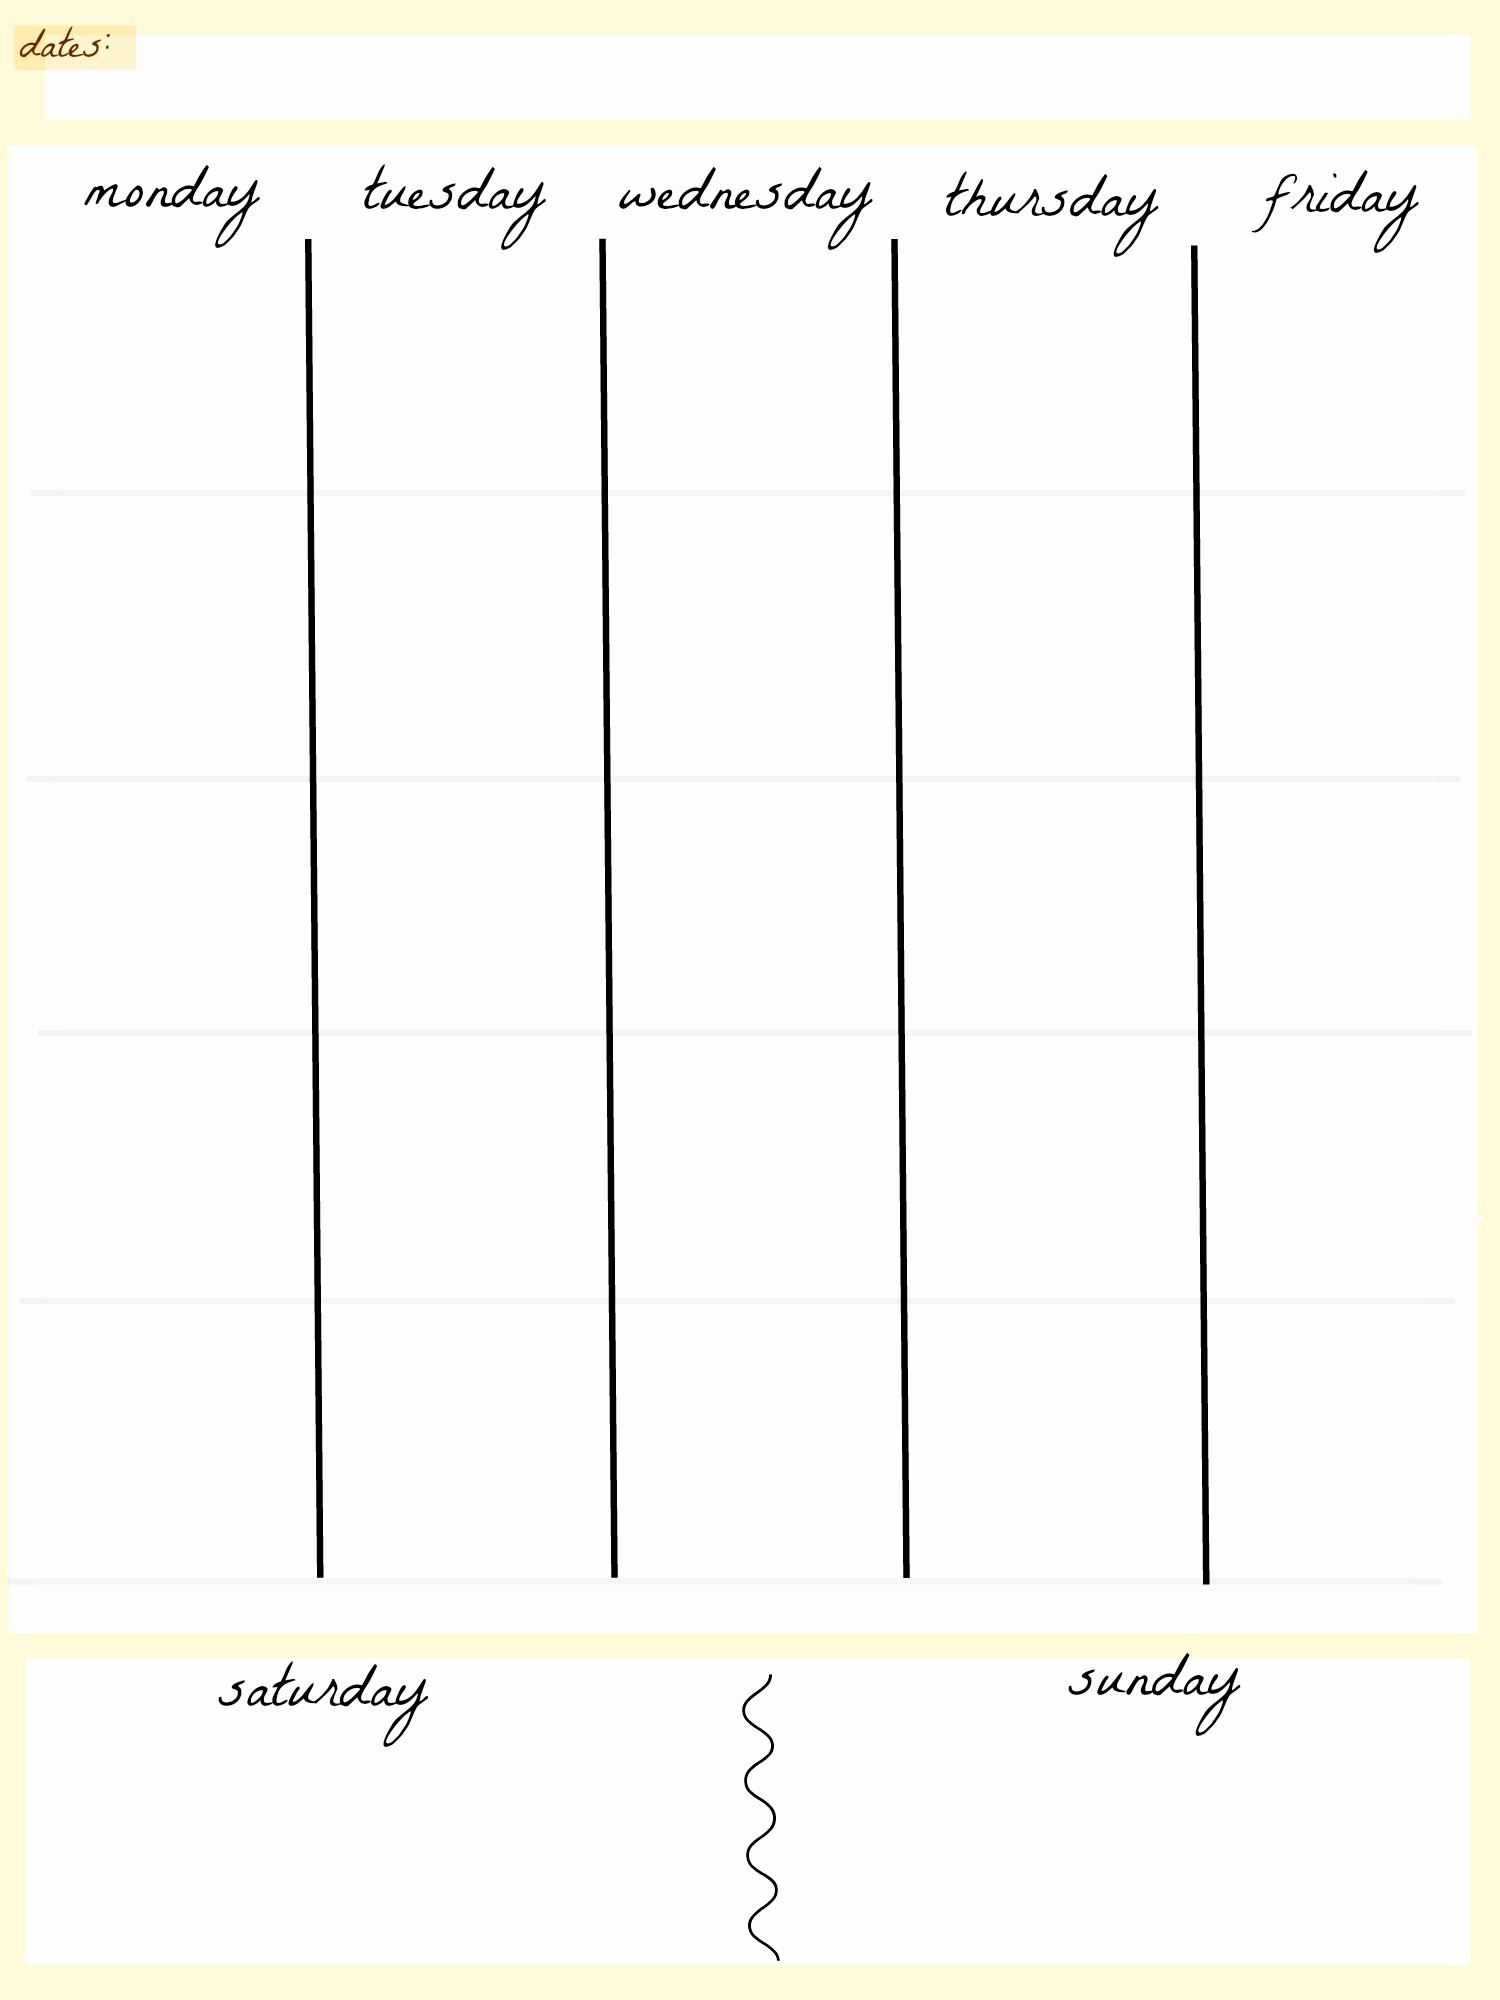 5 Day Calendar Template Word Lovely Weekly Calendar Print Out